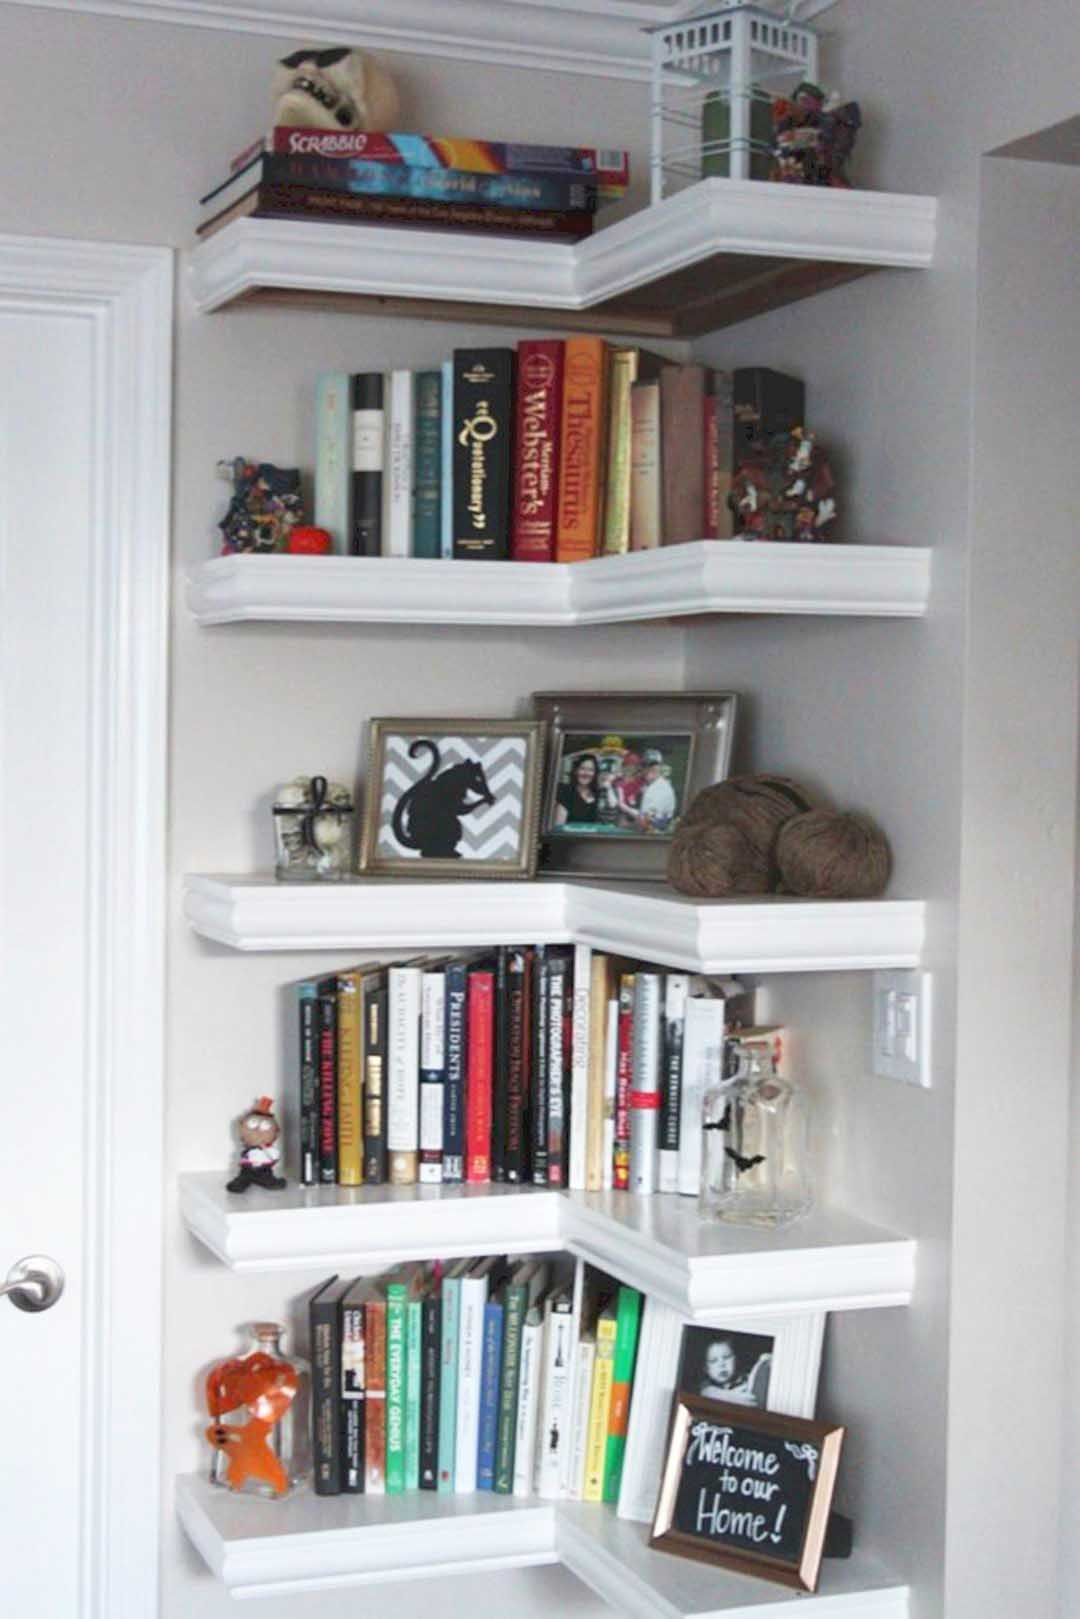 Shelves at The Corner In Between Doors